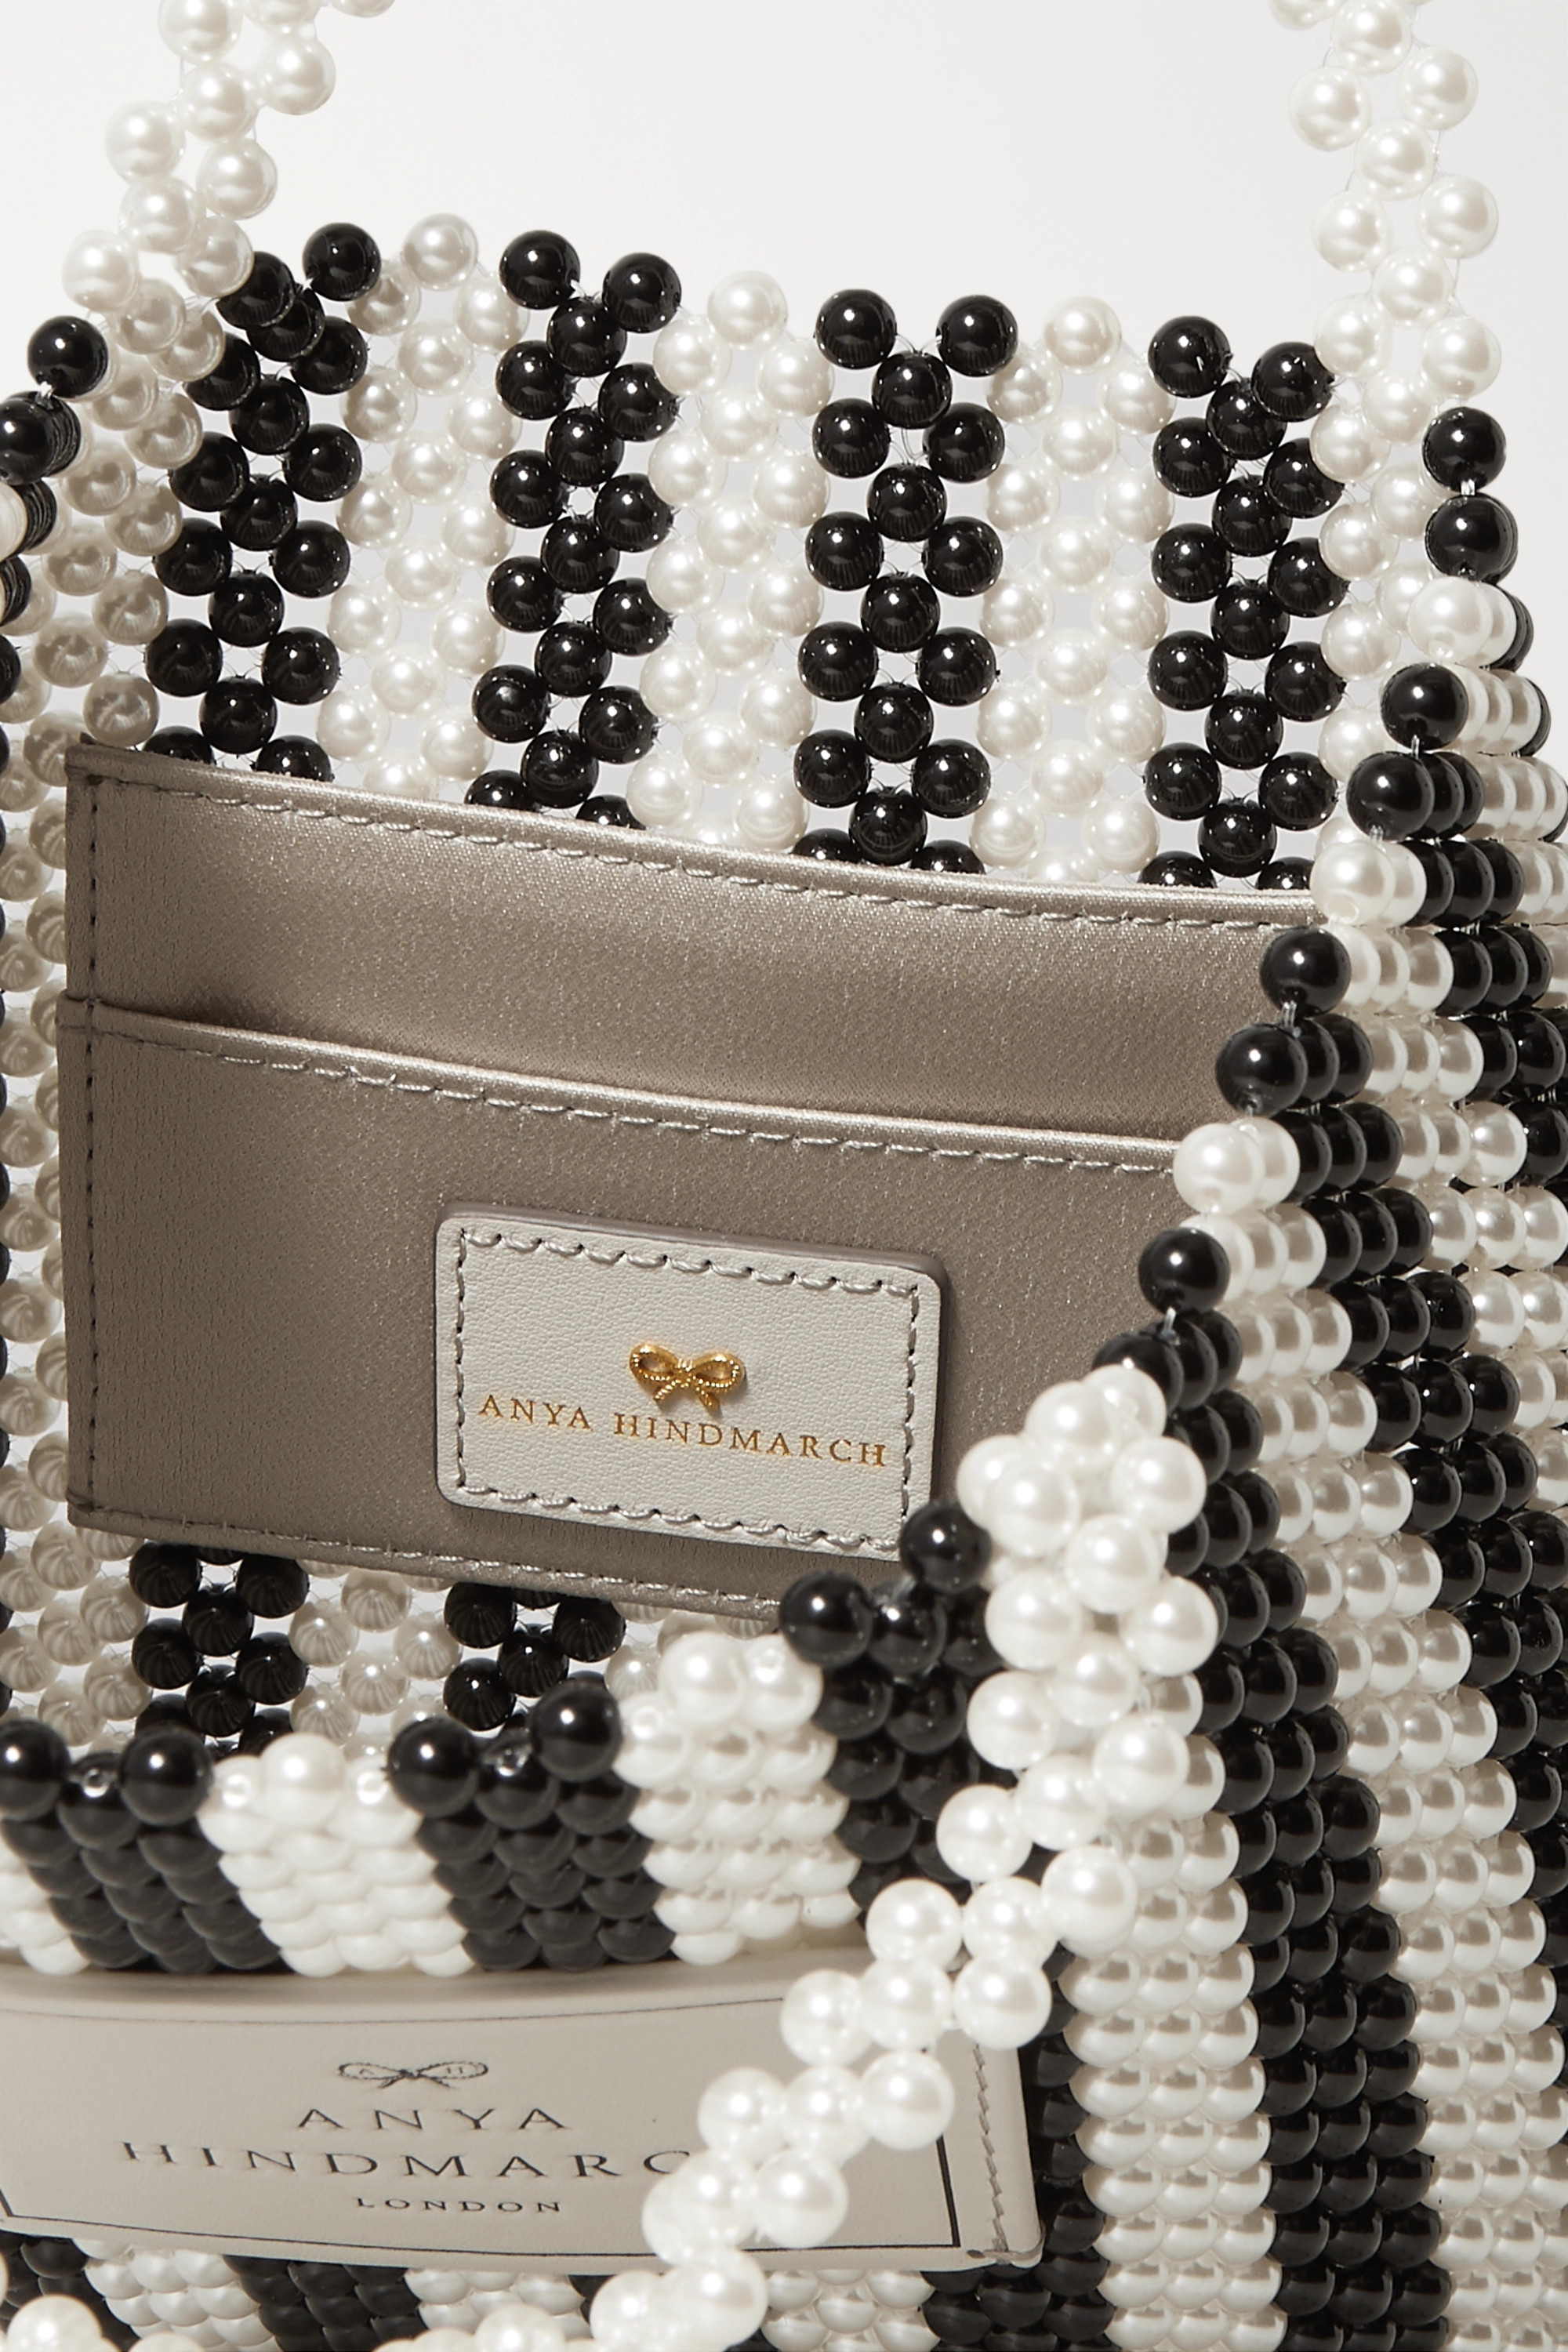 Anya Hindmarch Leather-trimmed beaded tote